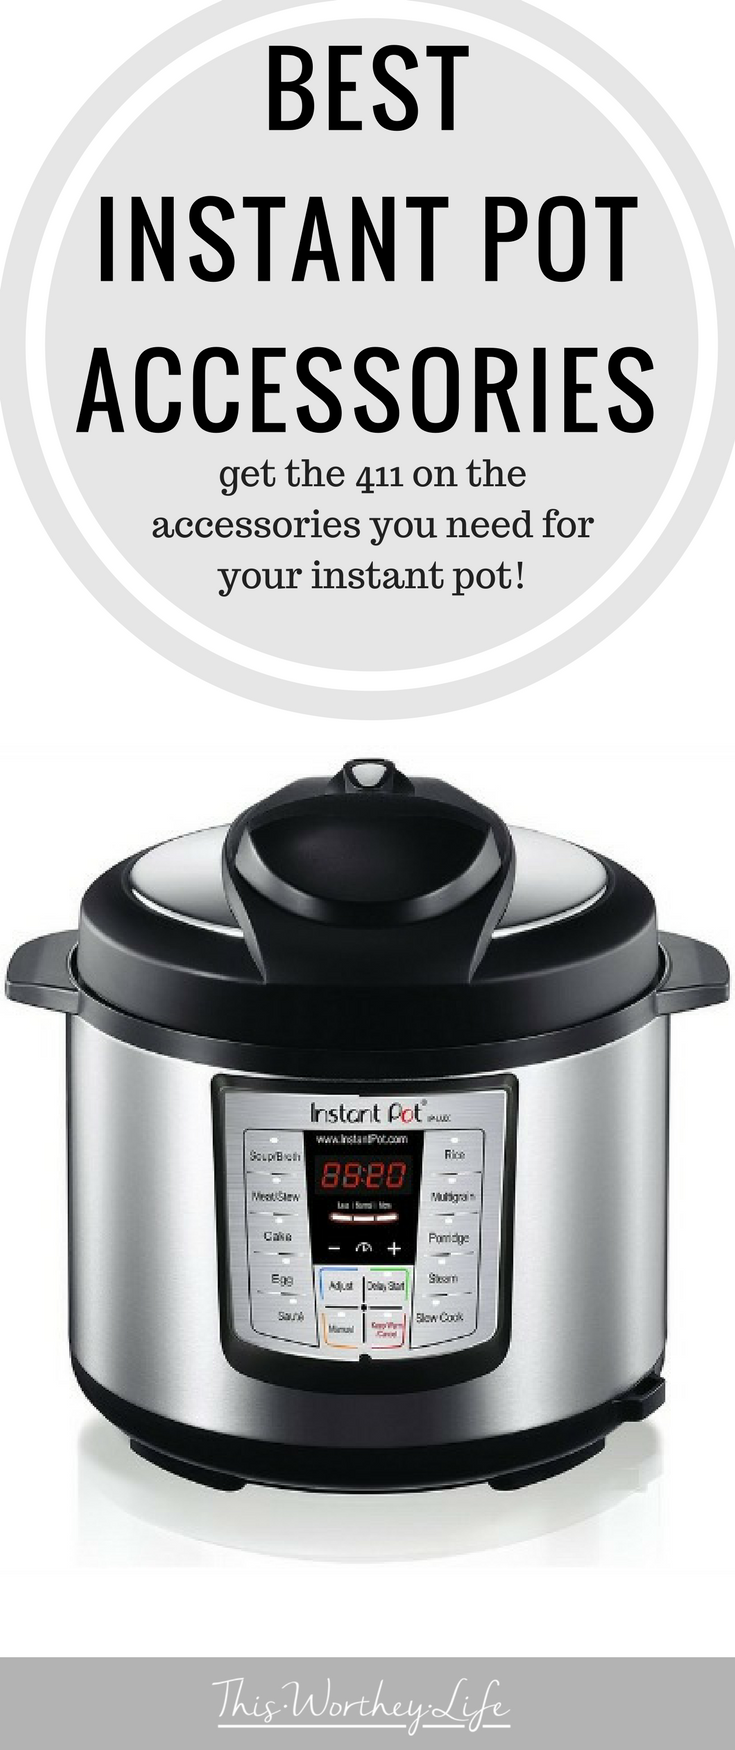 If you have an Instant Pot or planning on buying an Instant Pot, there are certain accessories you will need to get the most of your pressure cooker. I'm sharing the best instant pot accessories you want to invest in on the blog! #instantpot #instantpotaccesories #kitchentips #kitchenhacks